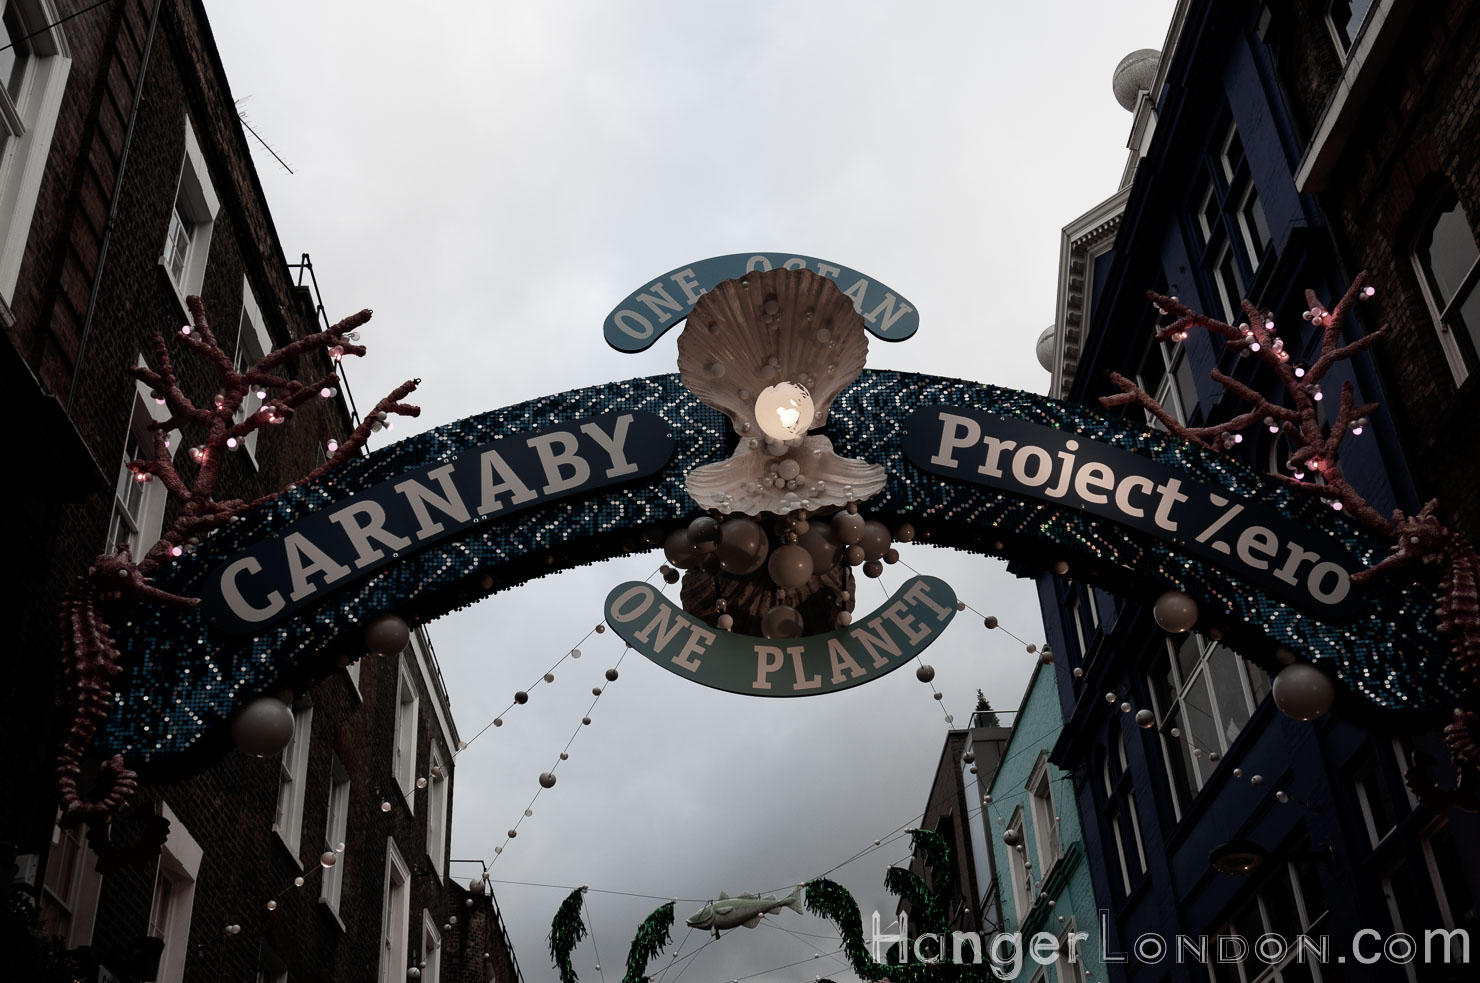 Carnaby St Winter one planet message